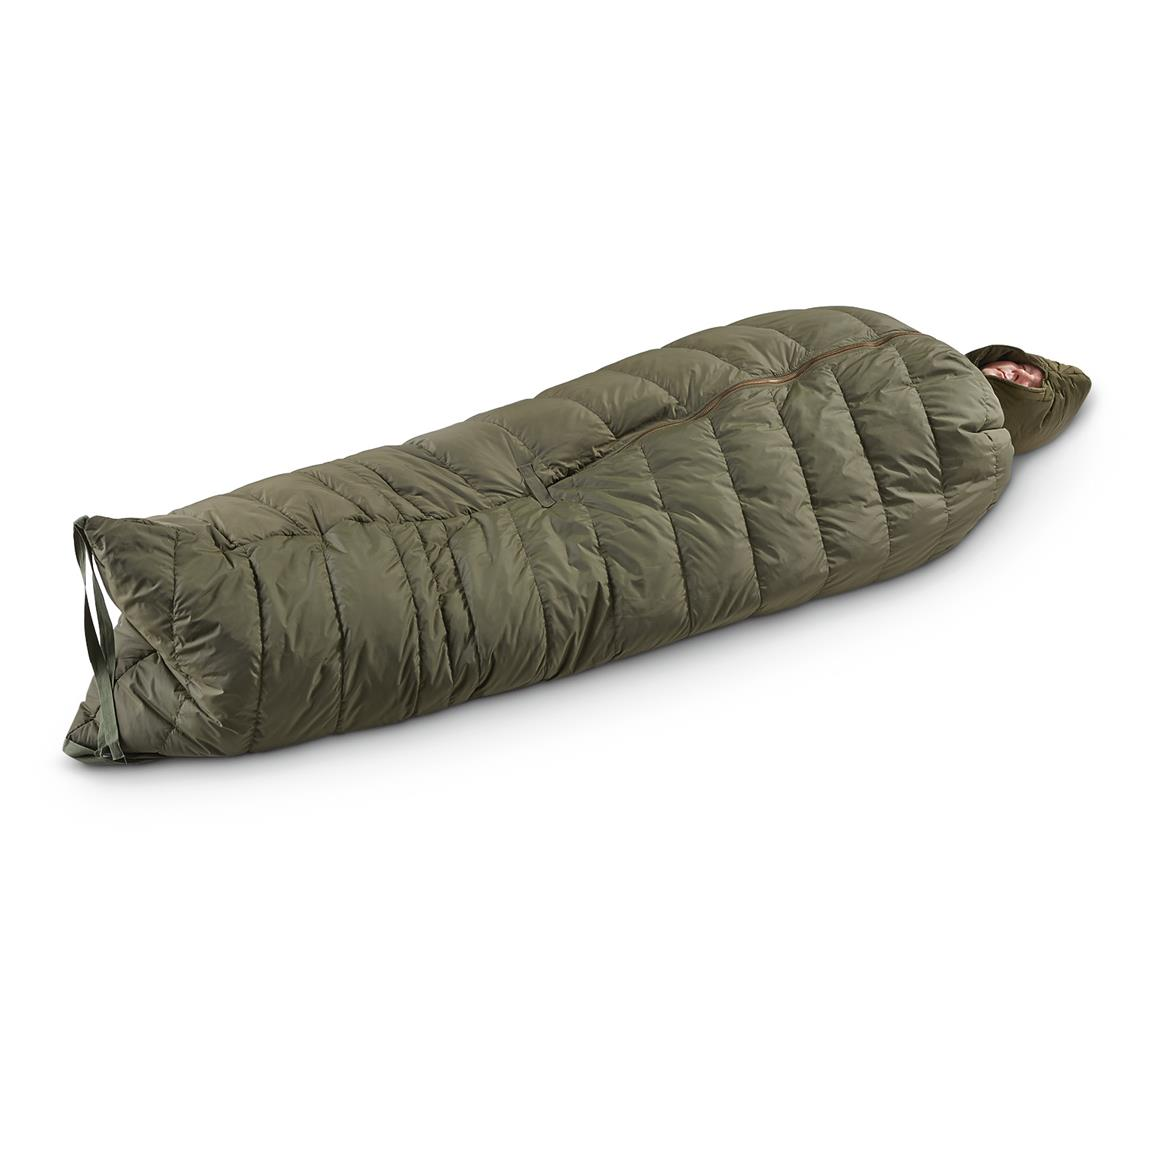 US Military Surplus ECW Sleeping Bag, Like New